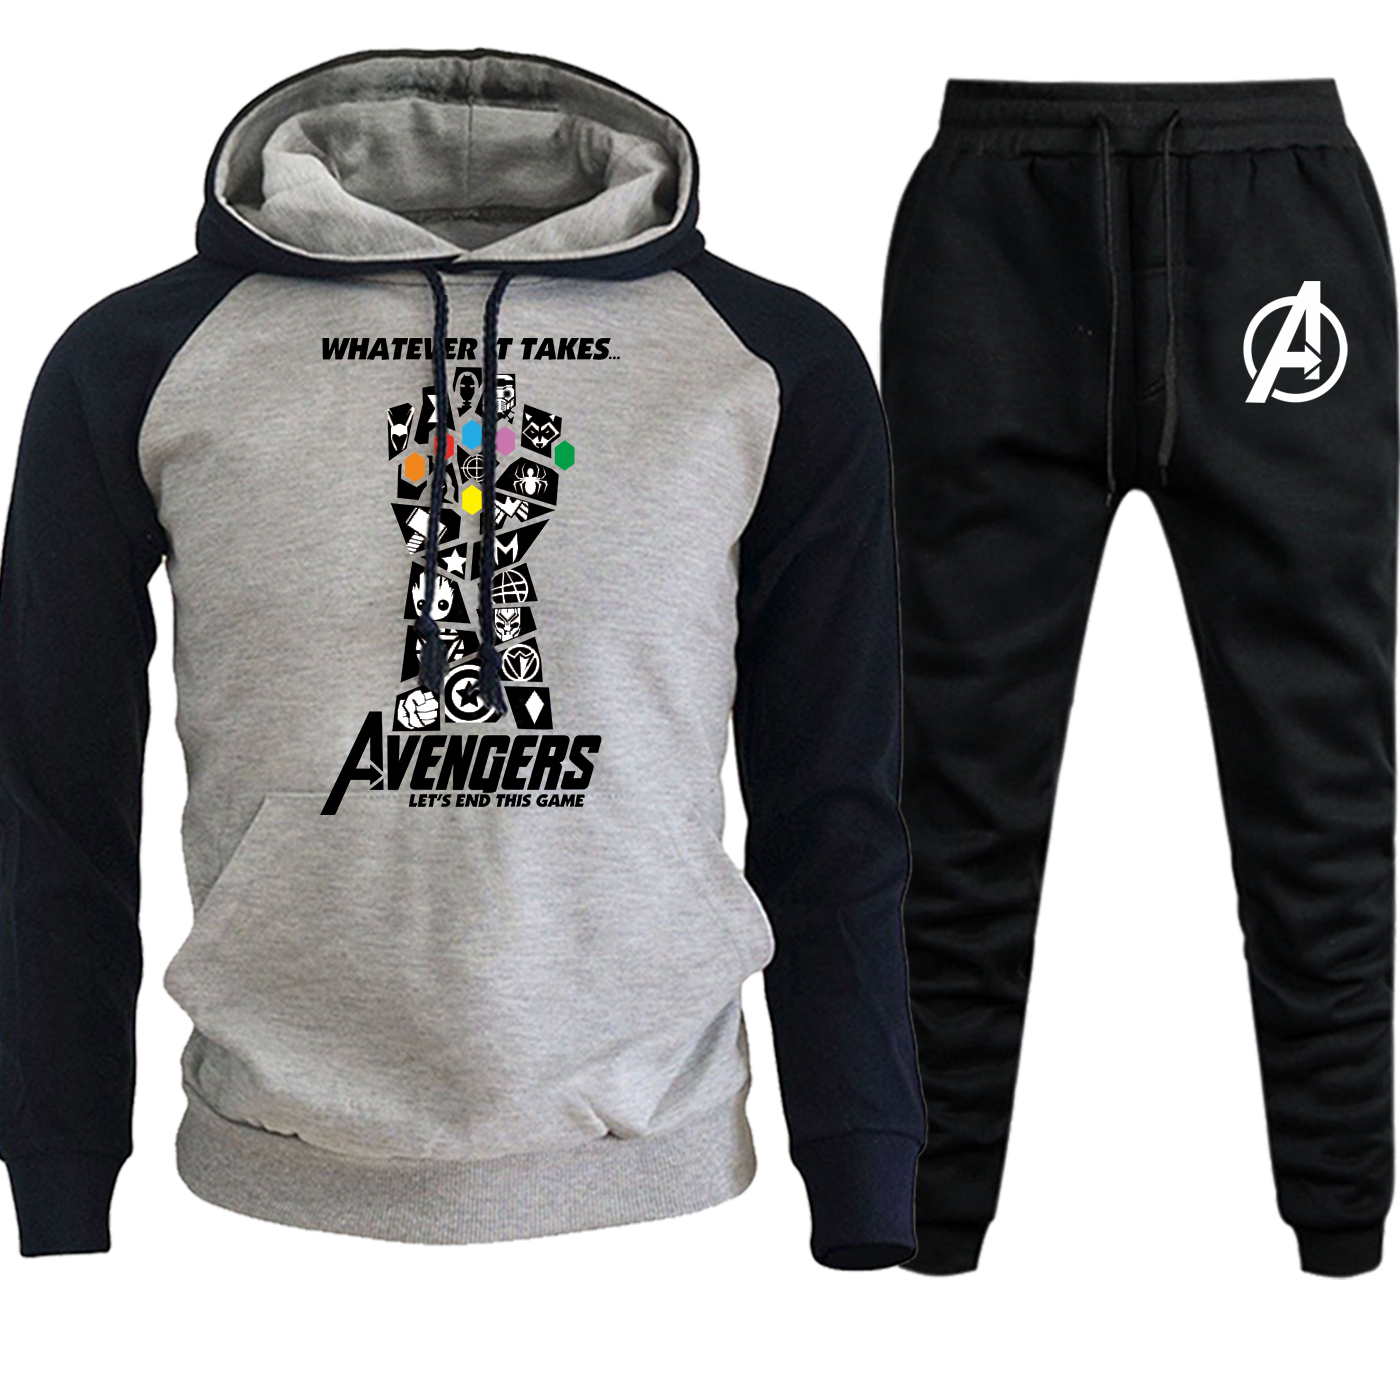 Infinity Gauntlet Streetwear Raglan Mens Hoodies Autumn Winter 2019 New The Avengers Suit Male Fleece Hooded+Pants 2 Piece Set